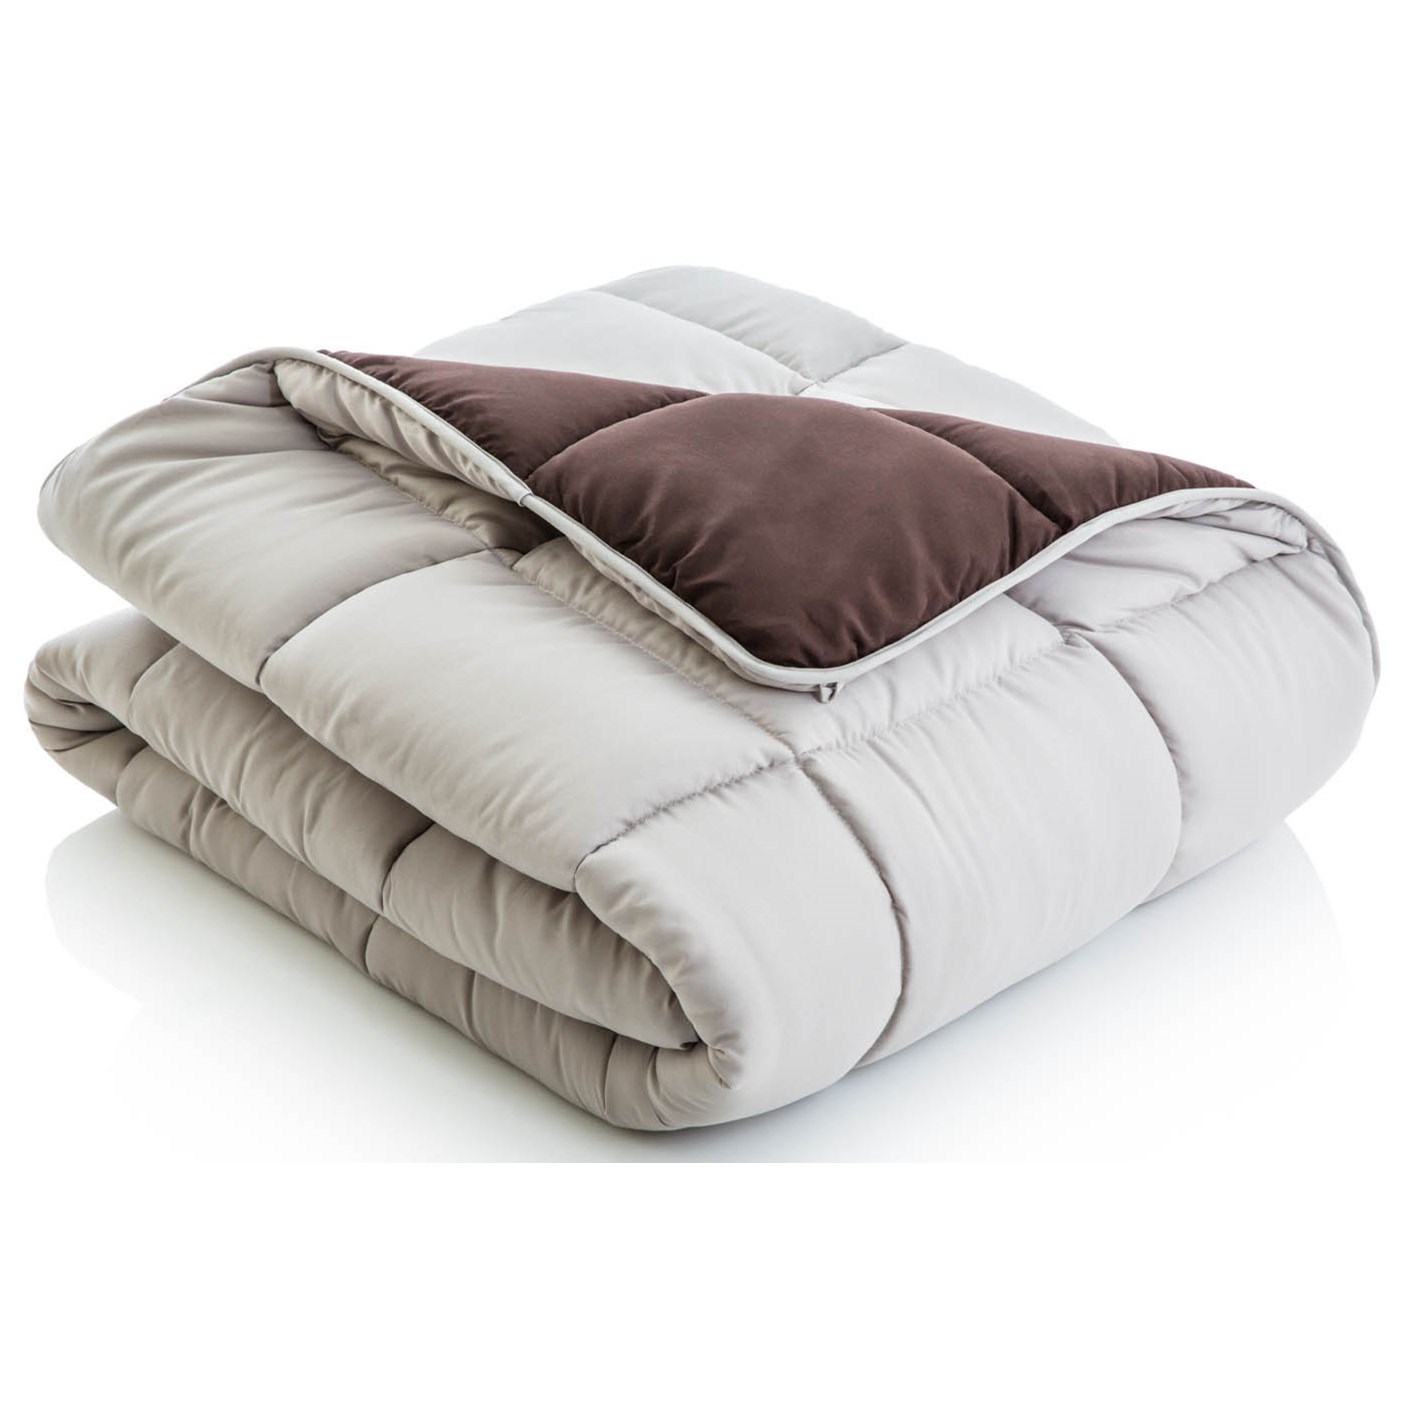 Malouf Reversible Bed in a Bag Full XL Reversible Bed in a Bag - Item Number: MA01FXDRCOBB